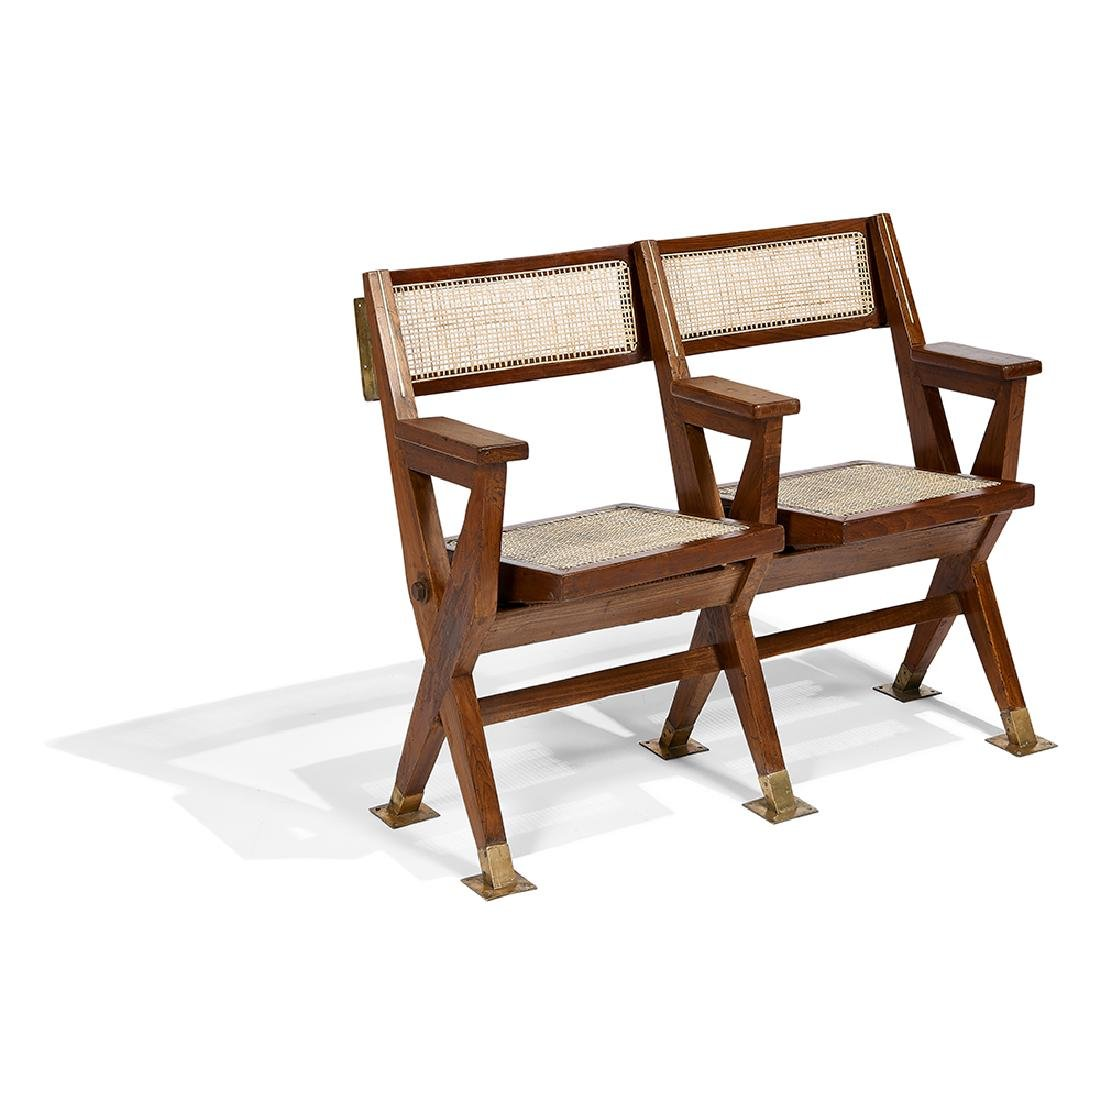 Pierre Jeanneret two-seat Theater Bench